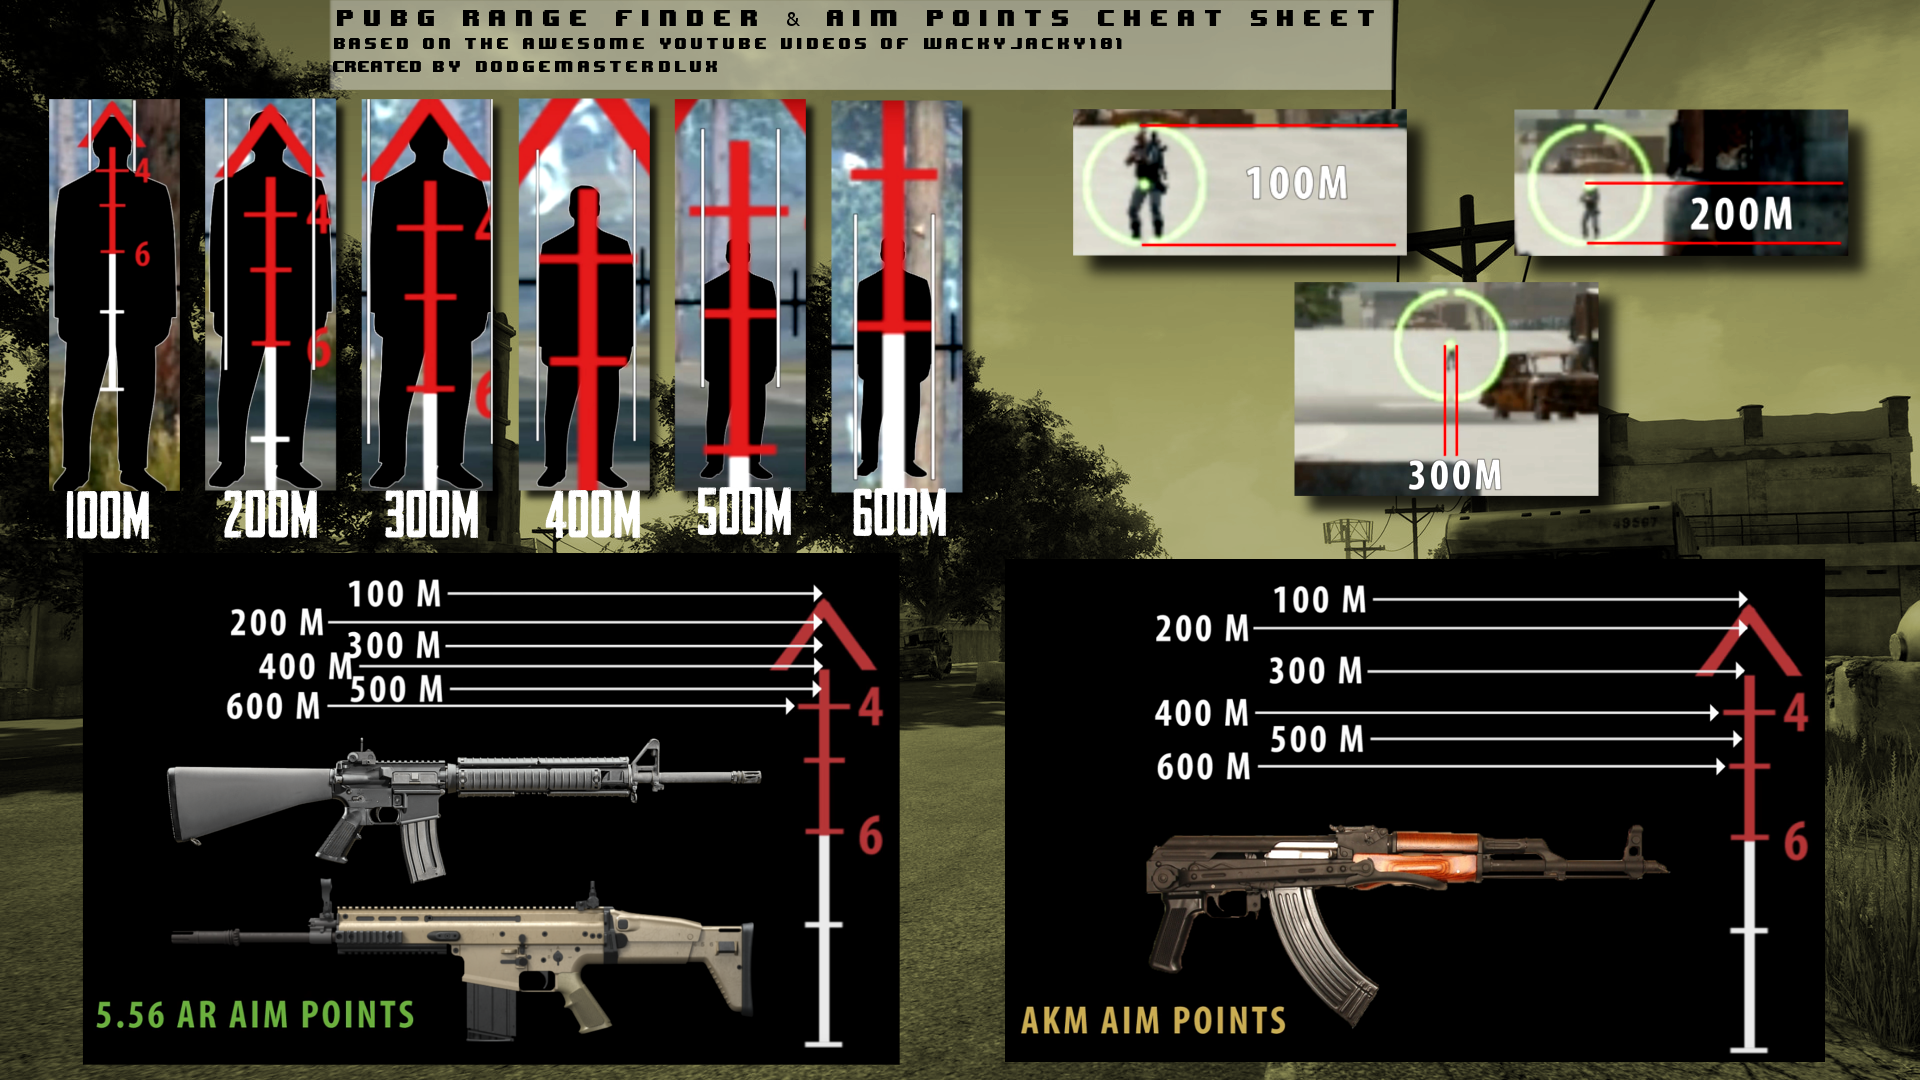 Cheat Sheet for Aim Points and Range Finding